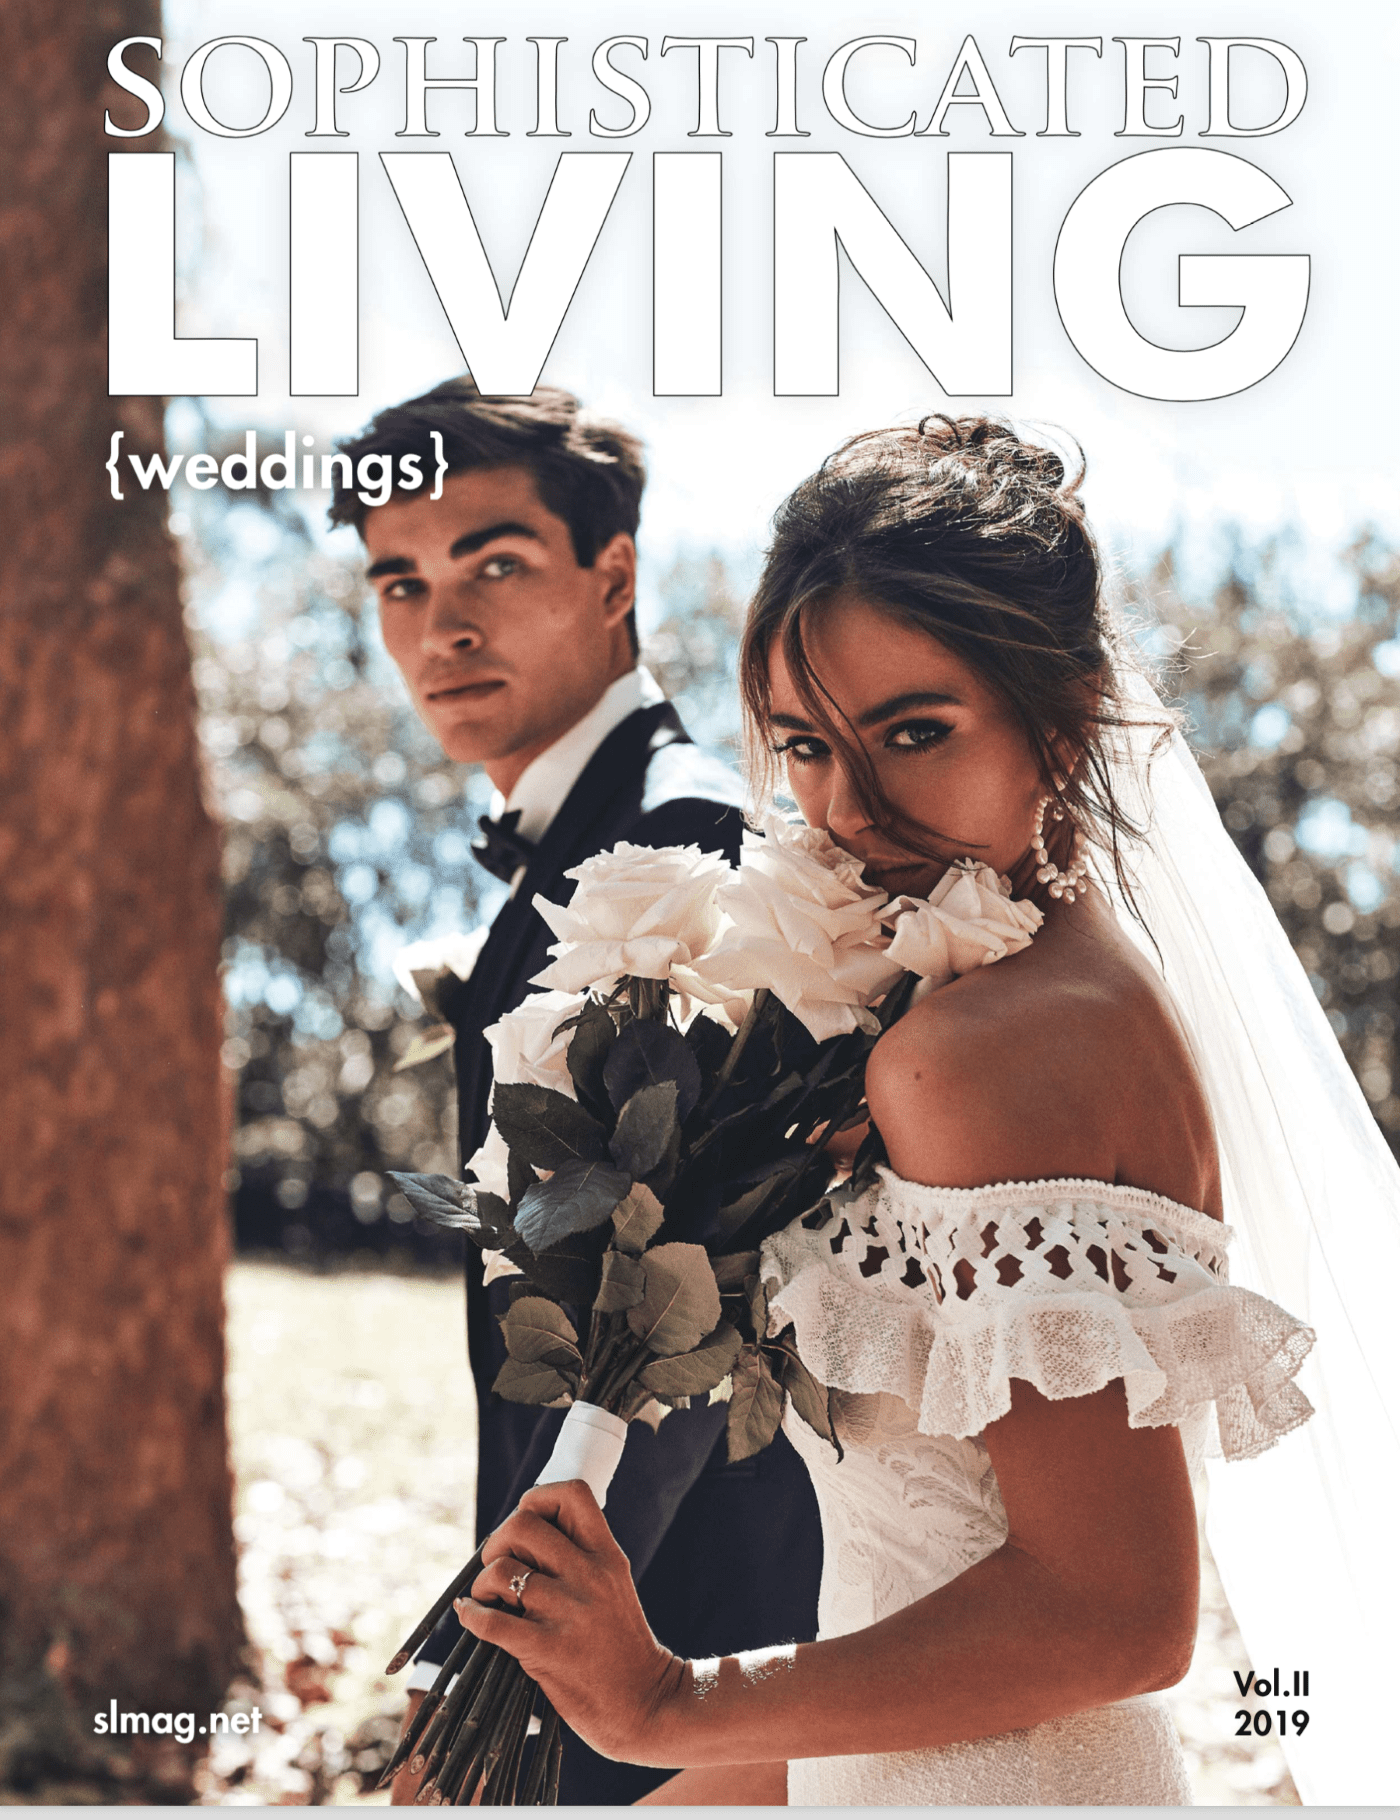 sophisticated living magazine 2019 vol2 - Premier W.E.D.